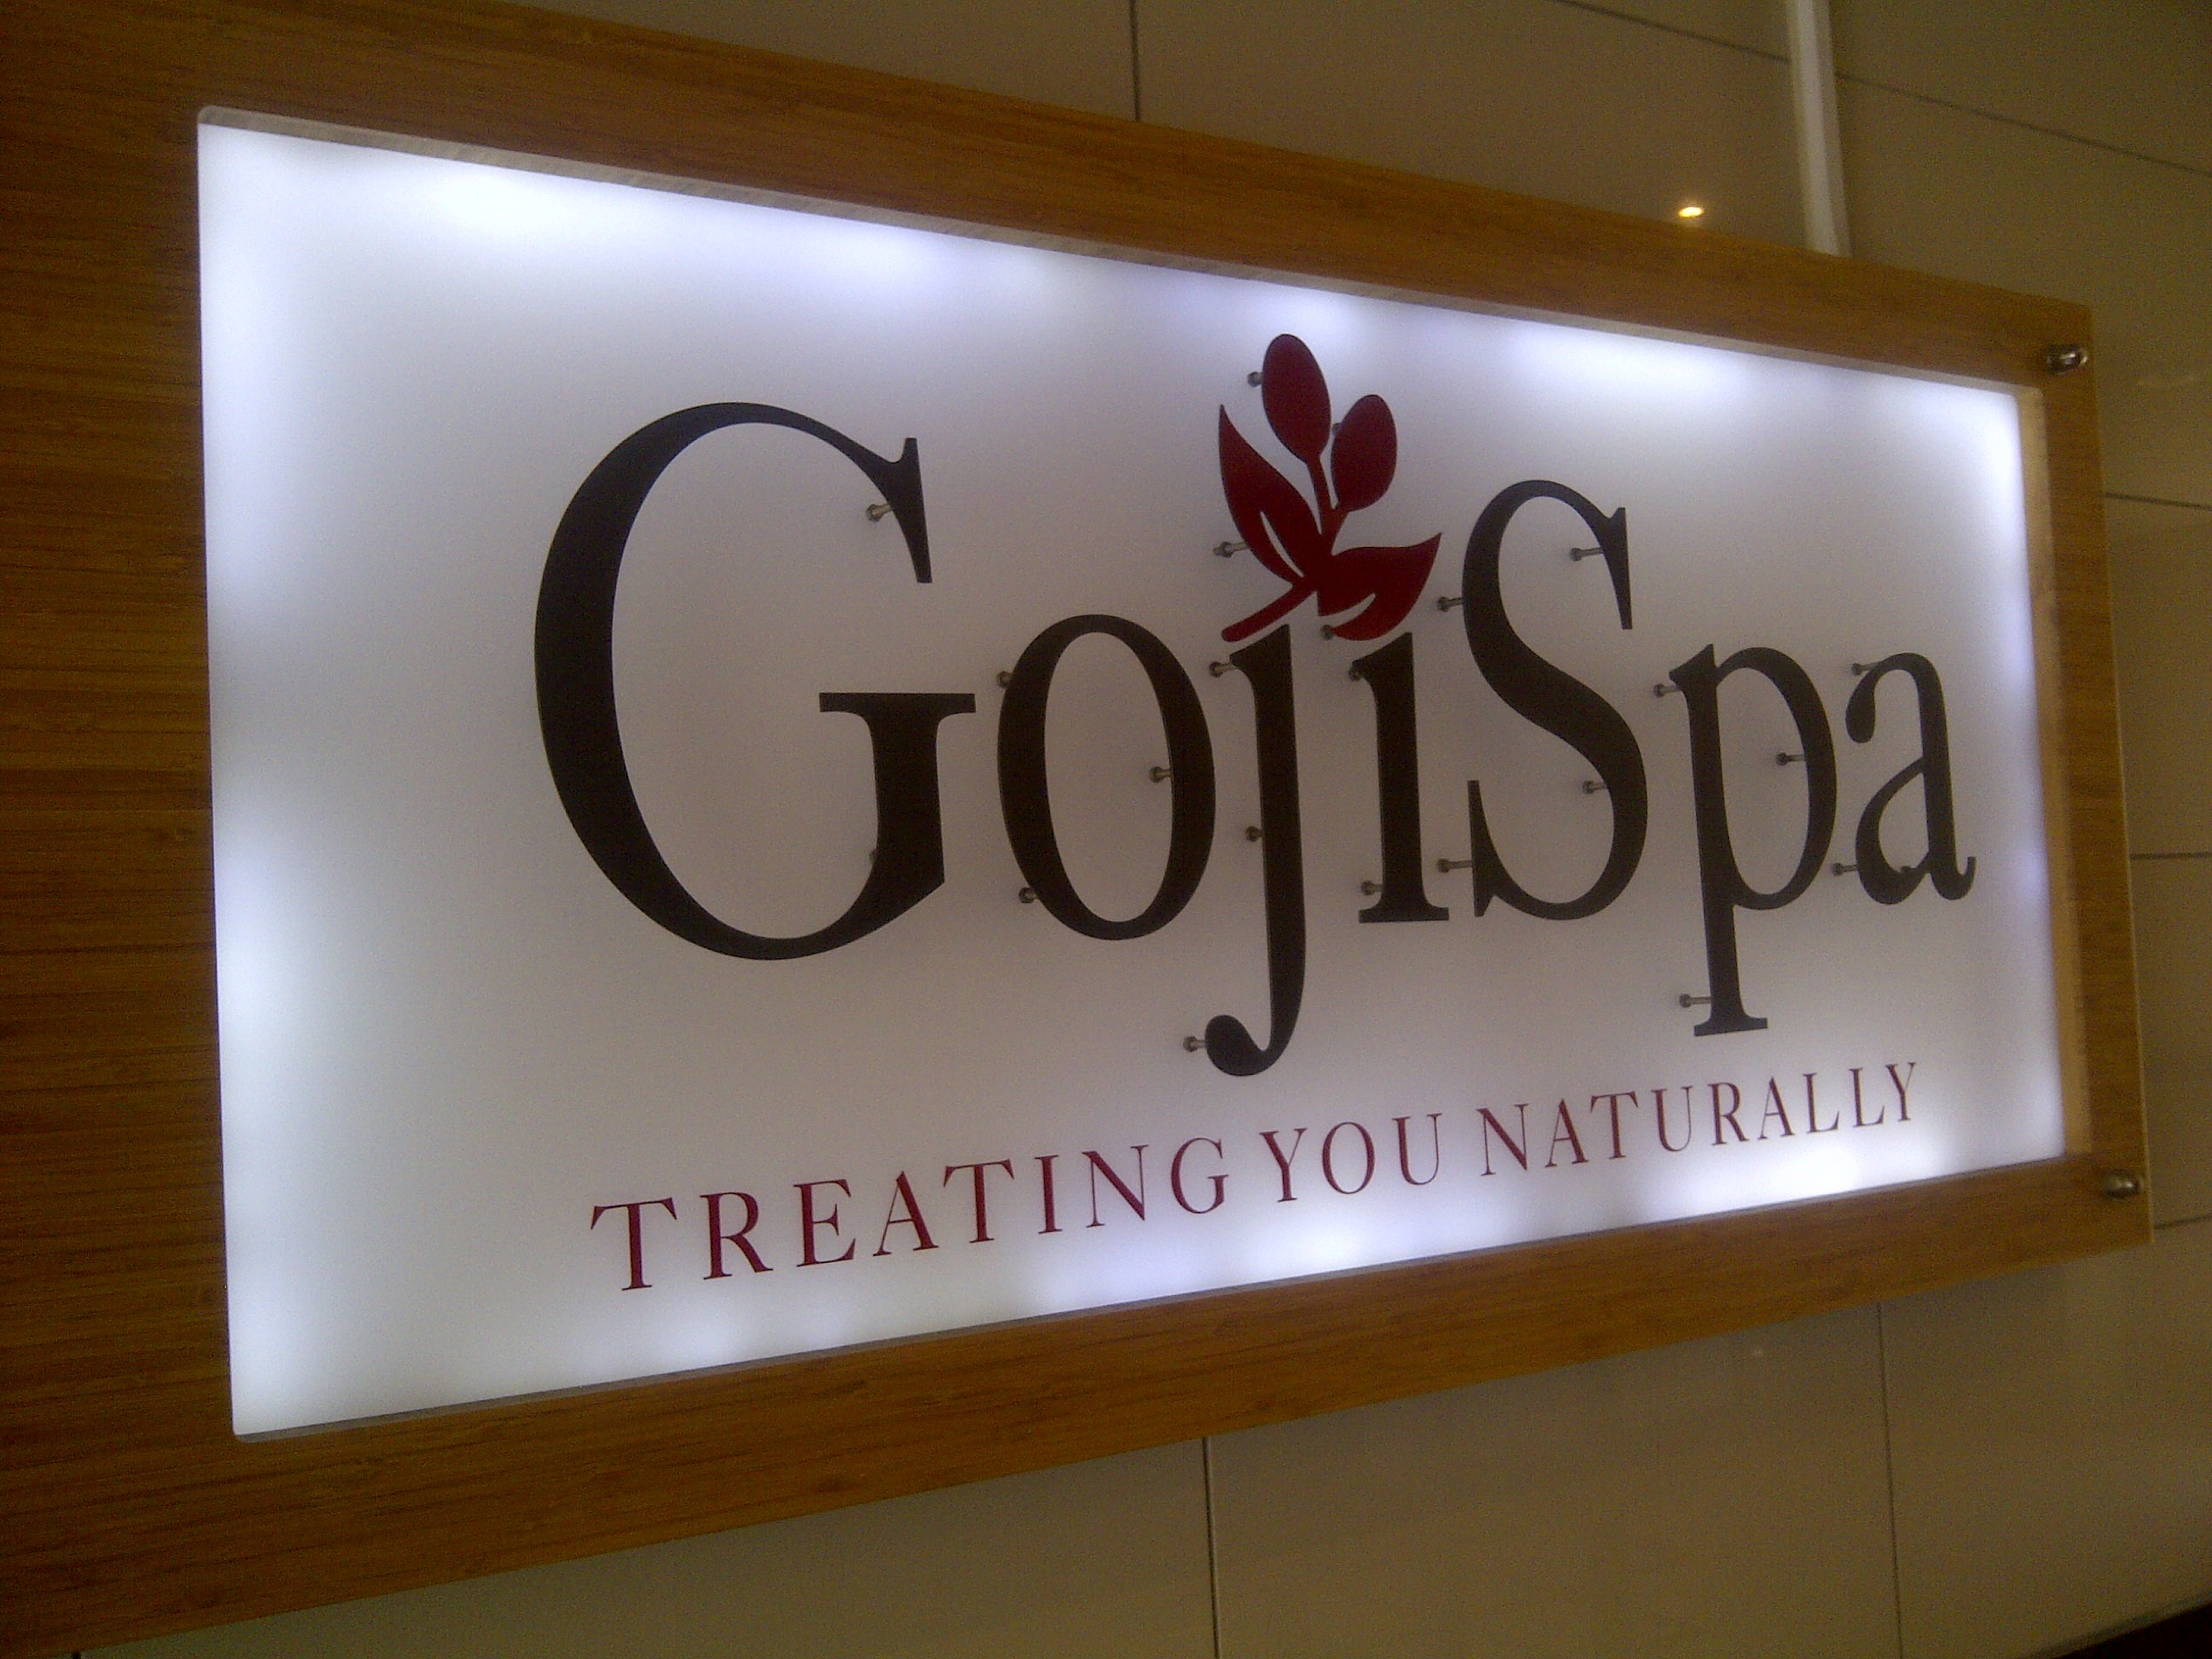 Goji spa pregnancy massage s best kept secret the milk for Pregnancy and spa treatments